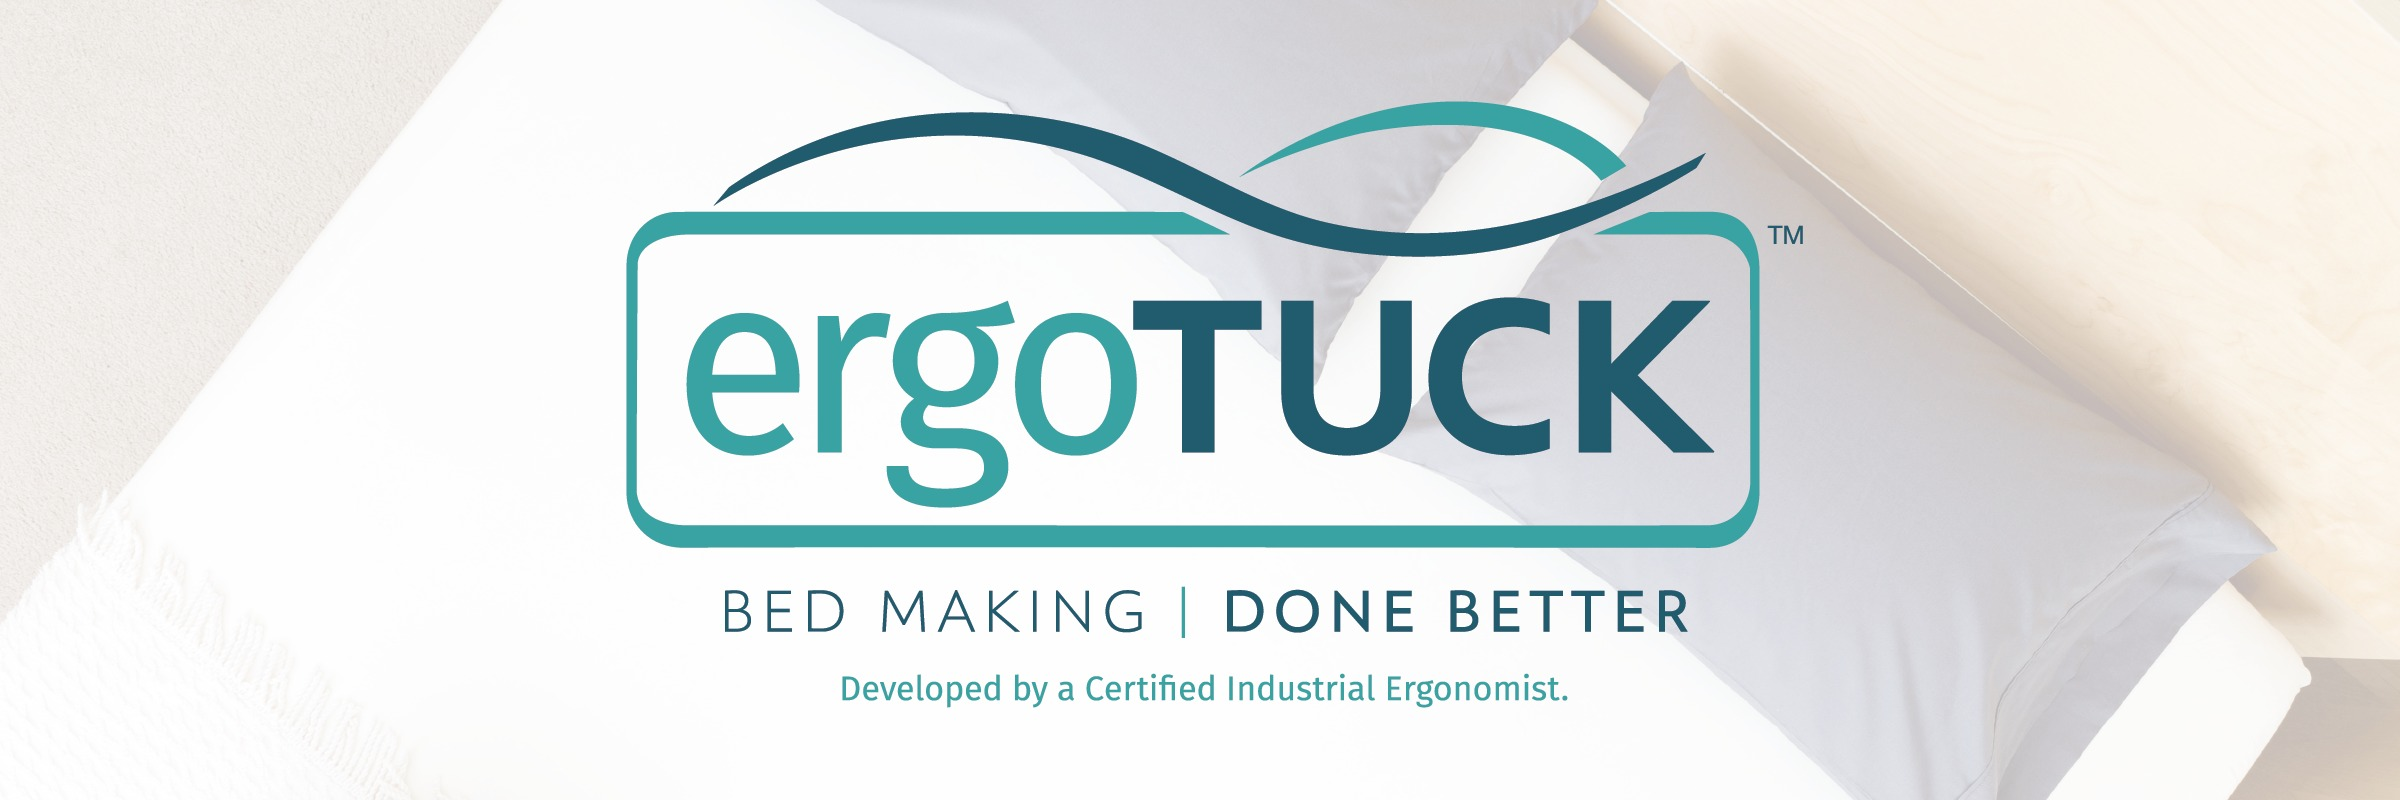 ErgoTuck Bed Making Tool